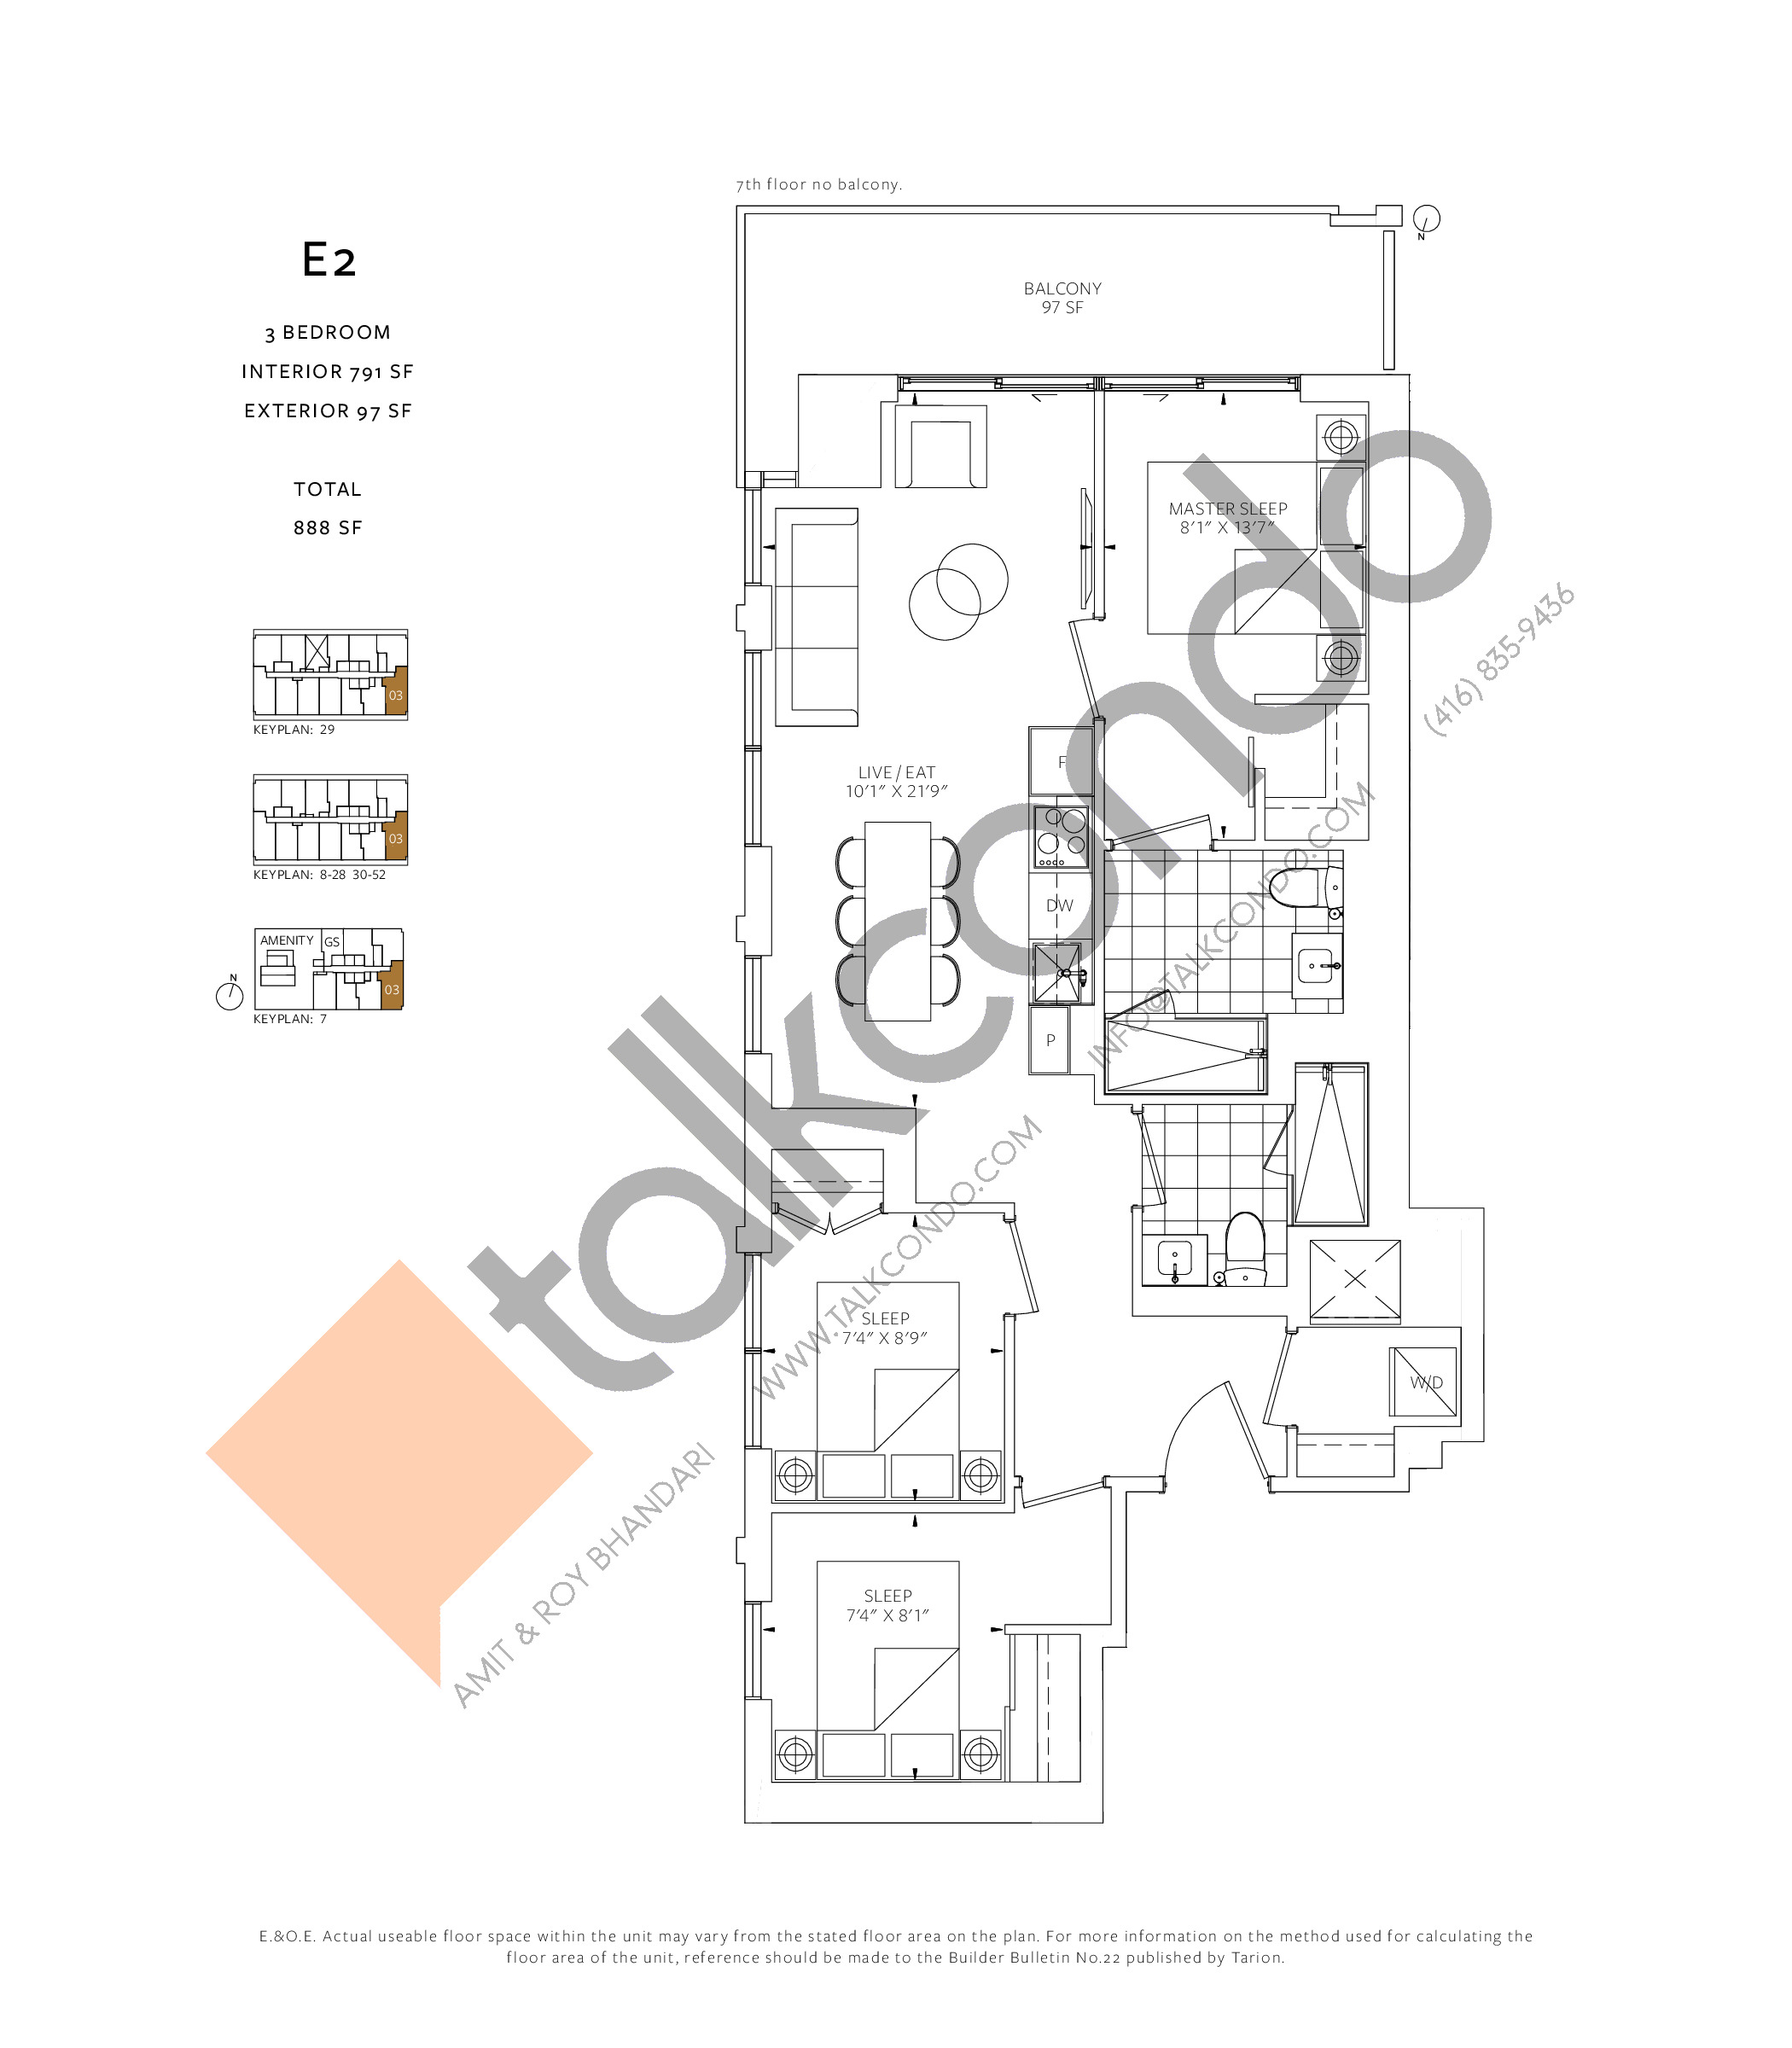 E2 Floor Plan at 88 Queen Condos - Phase 2 - 791 sq.ft